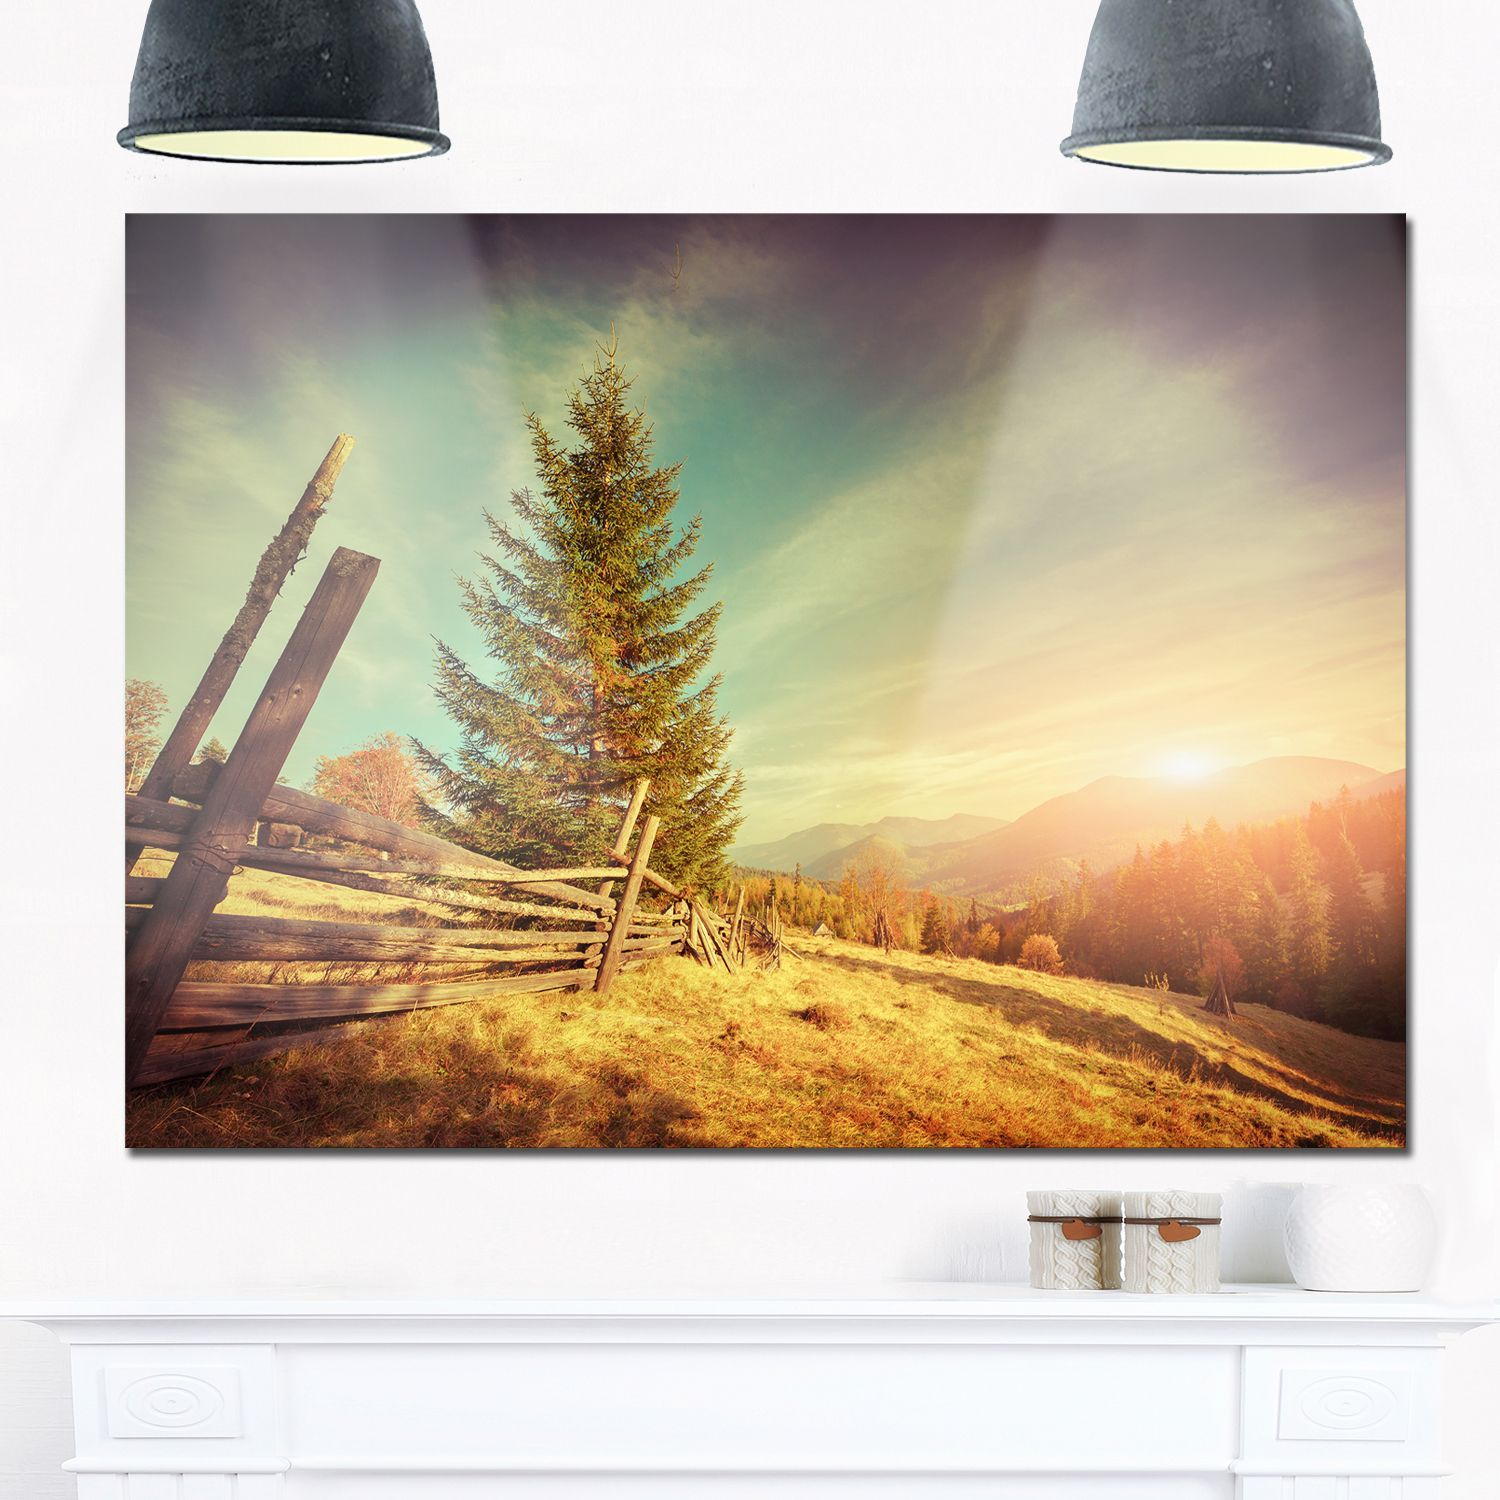 Retro Style Autumn in Mountains - Landscape Photo Glossy Metal Wall ...